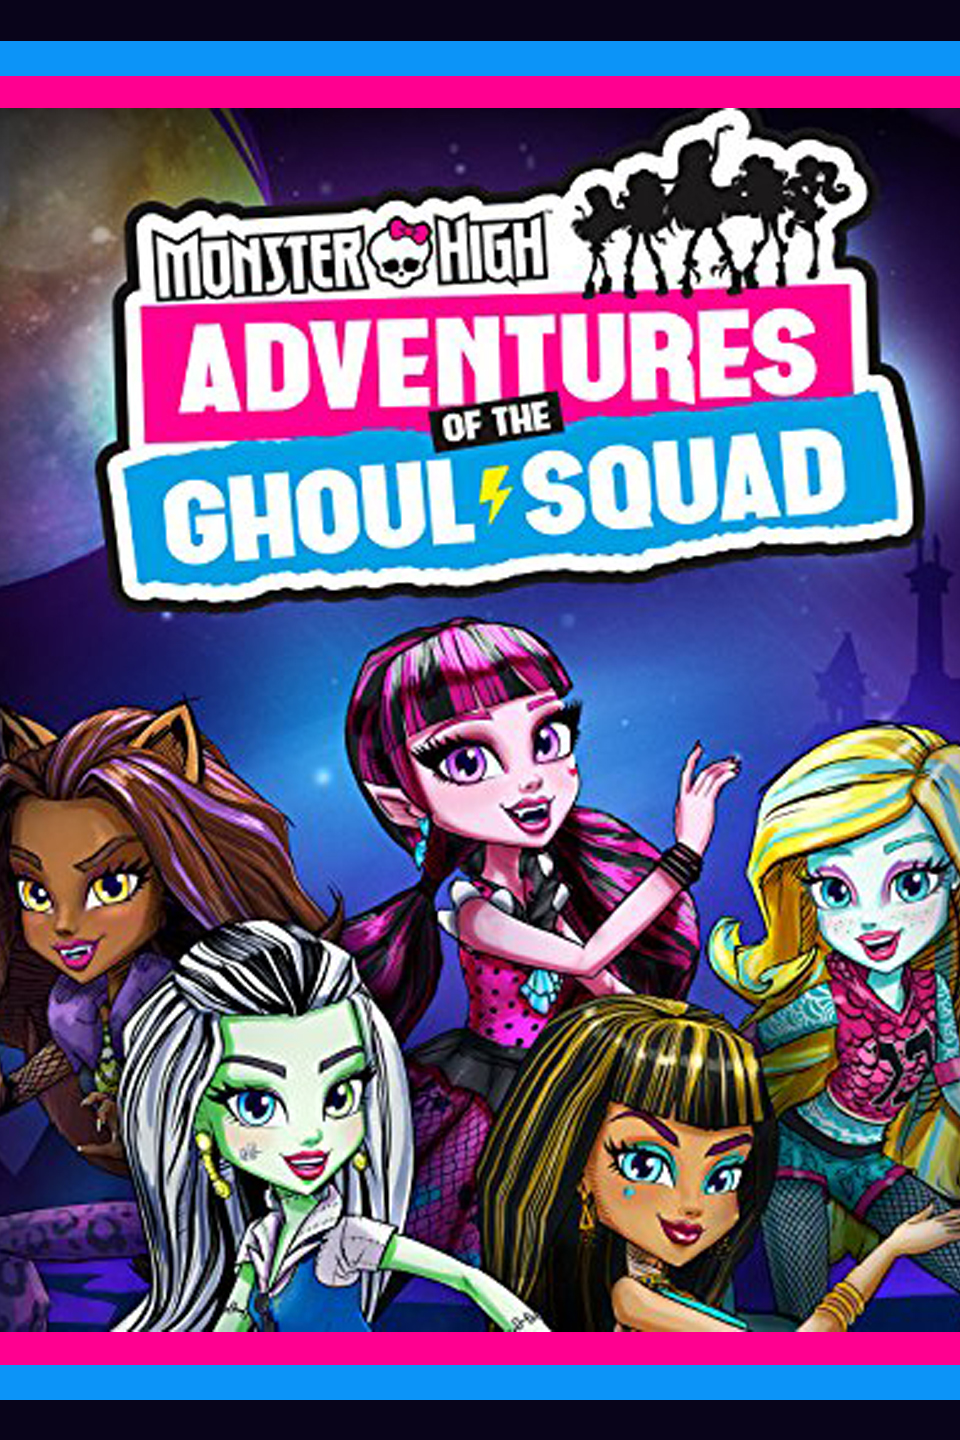 Monster High: Adventures of the Ghoul Squad, 2017 - Created by MattelSpin-off for Youtube streaming.Role: Development and lead texture artistBegan with R&D for character proof of concept, developing: modeling, toon shaders and toon lines to achieve a comic-book inspired style. Transitioned into a Lead position for the Texturing department on this production as of February 2017.